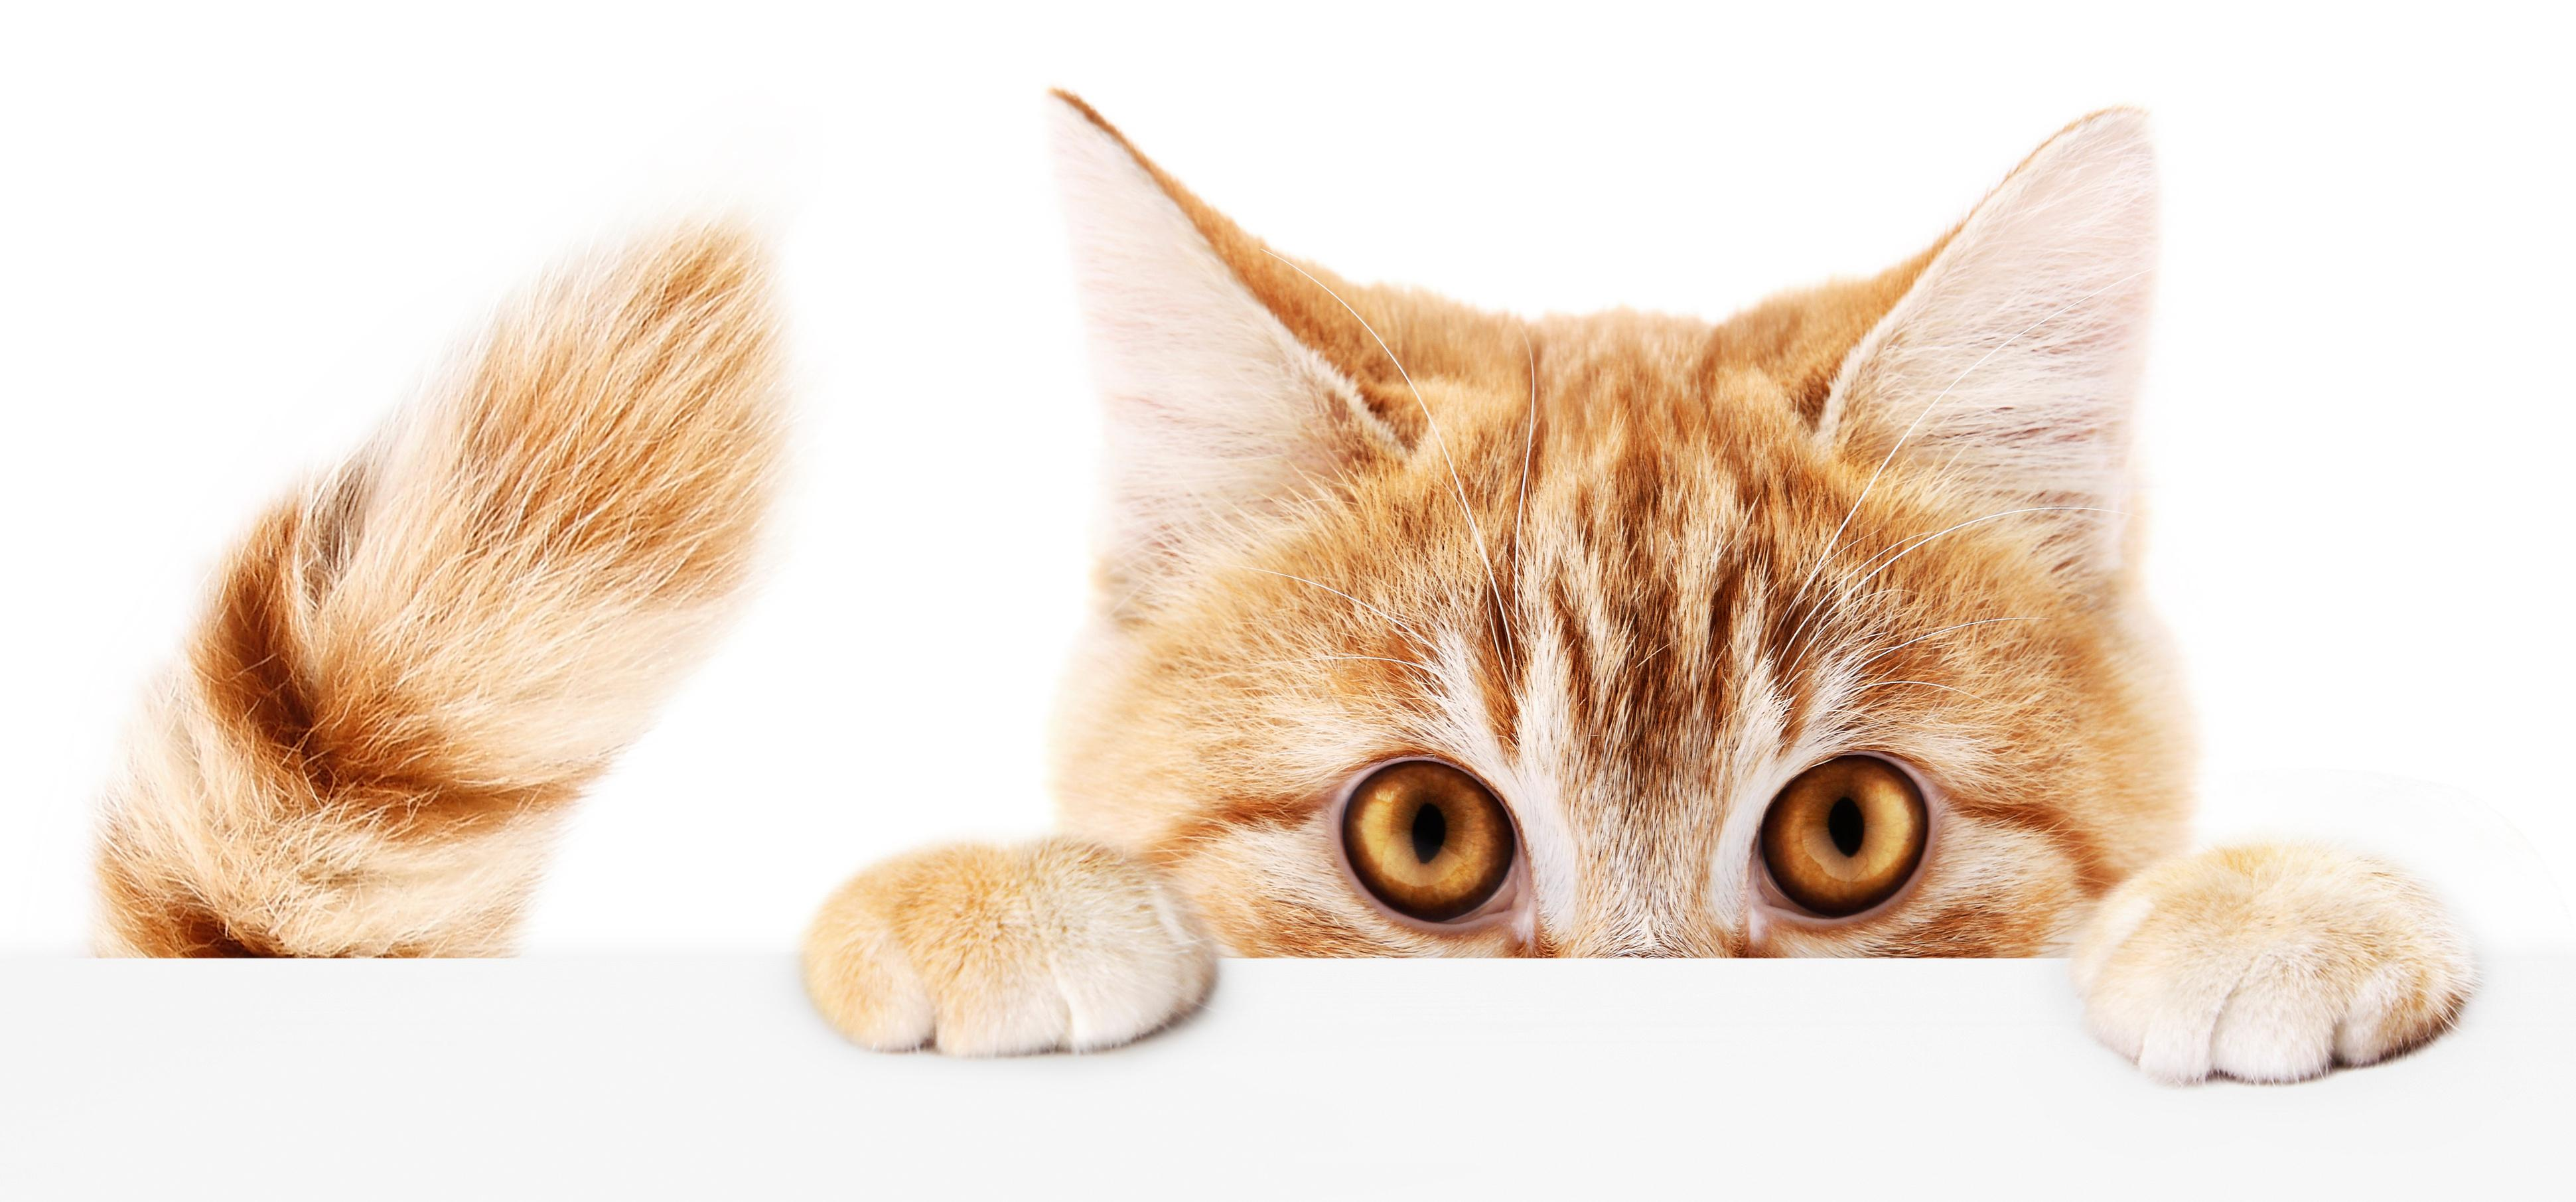 Which composer was accused of being a cat killer? The Weekend quiz